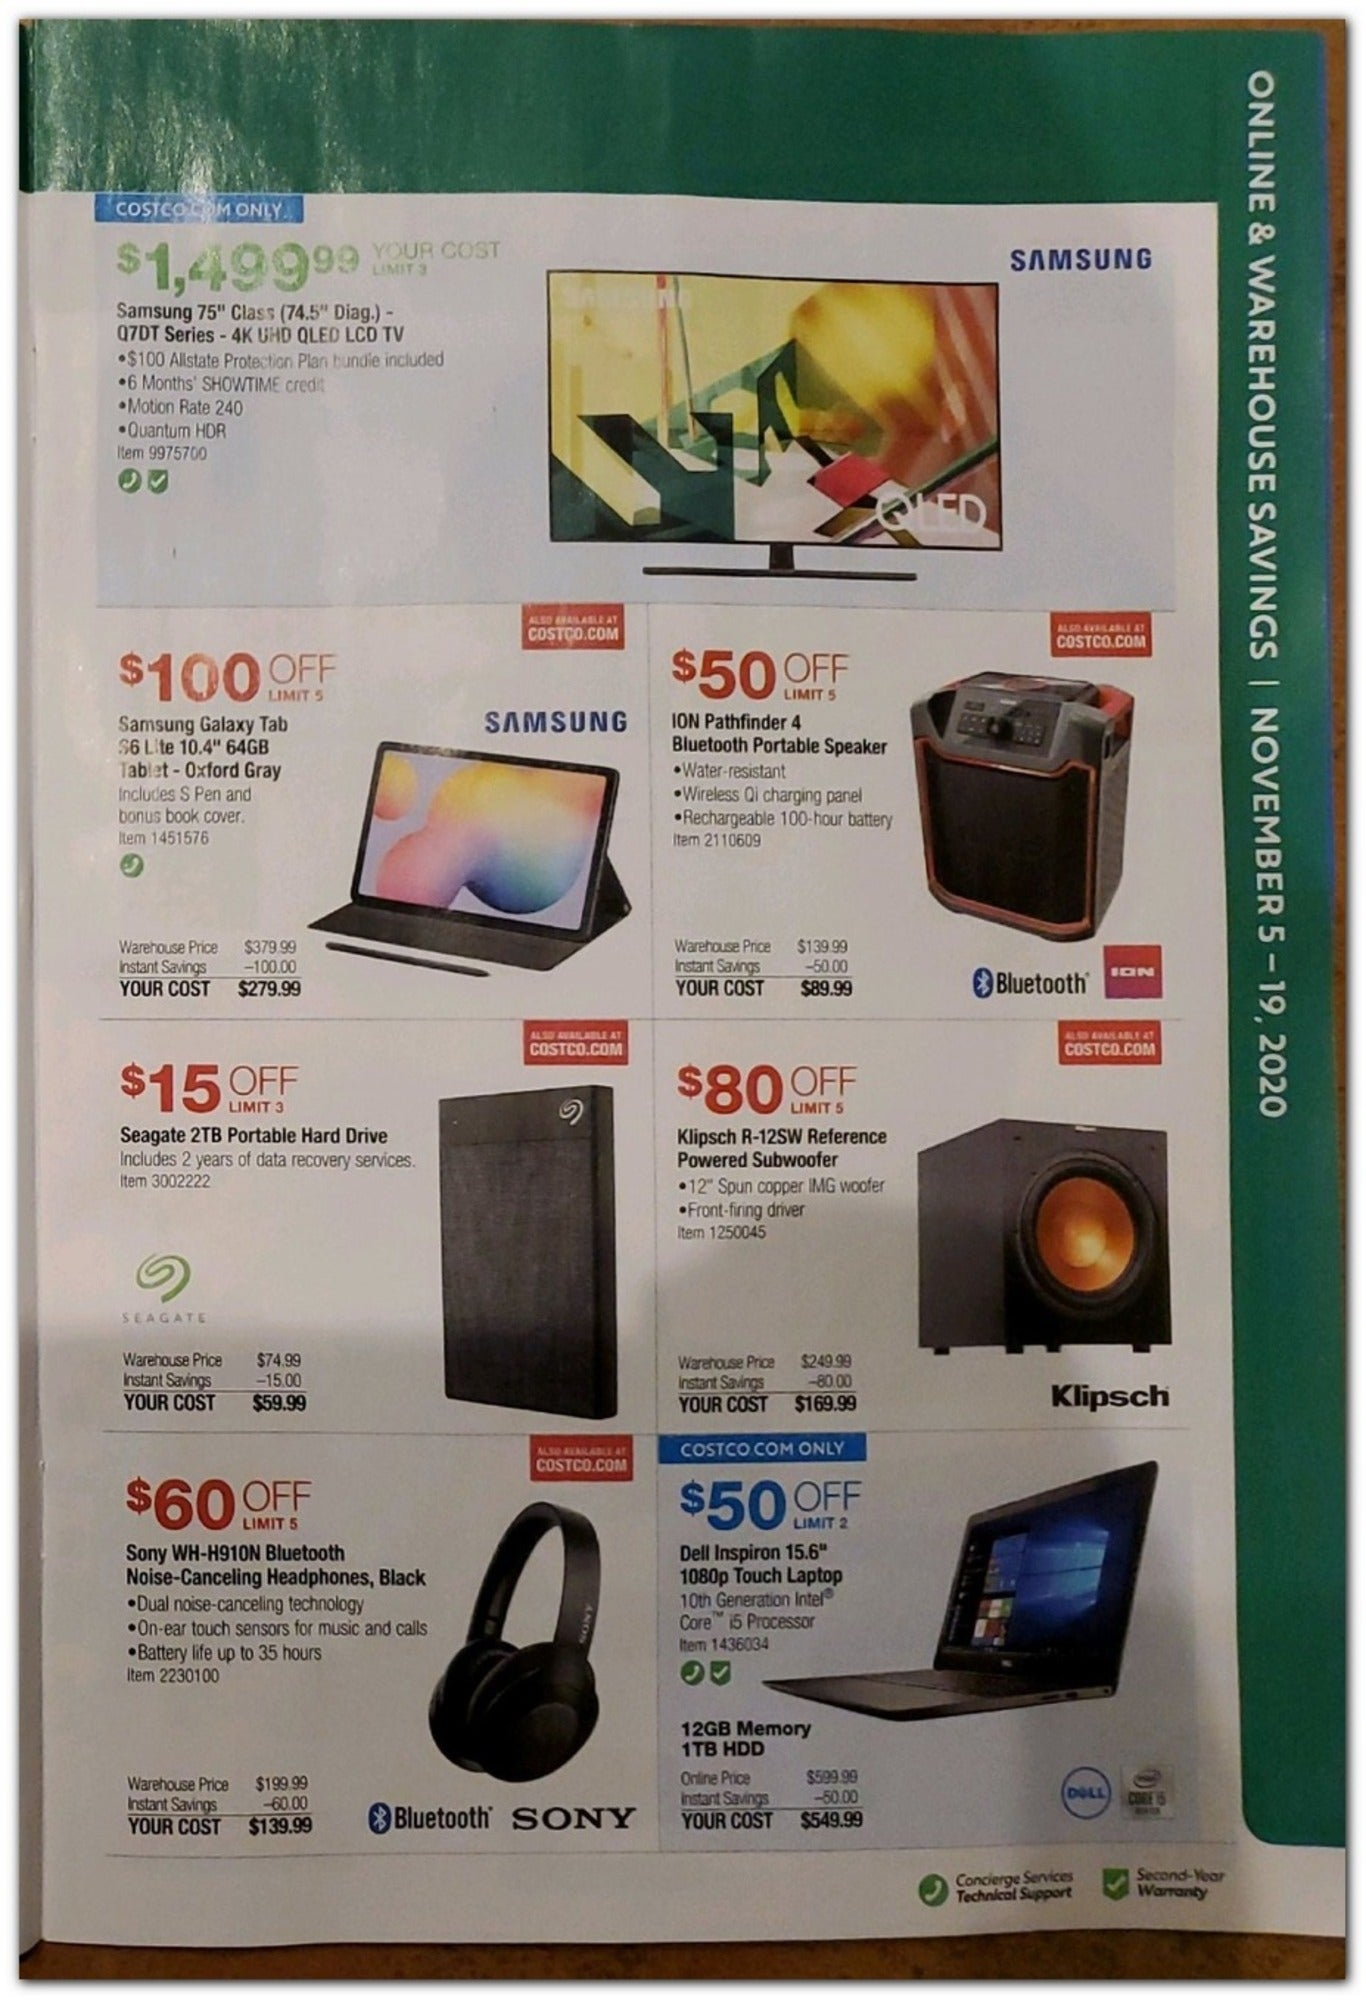 Costco Black Friday 2020 Page 9